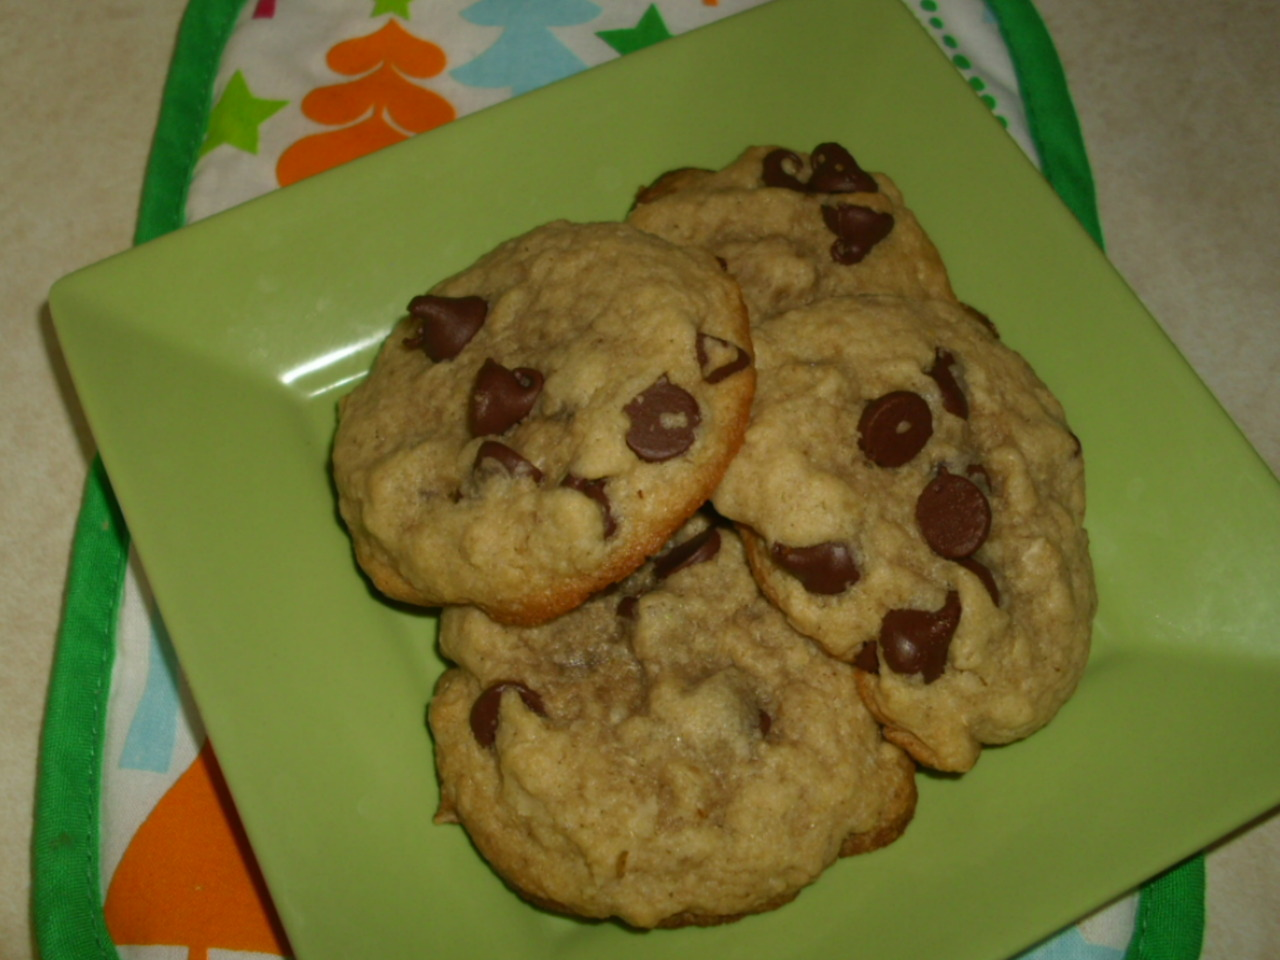 Eating Well's Healthy Choc-Chip Cookies